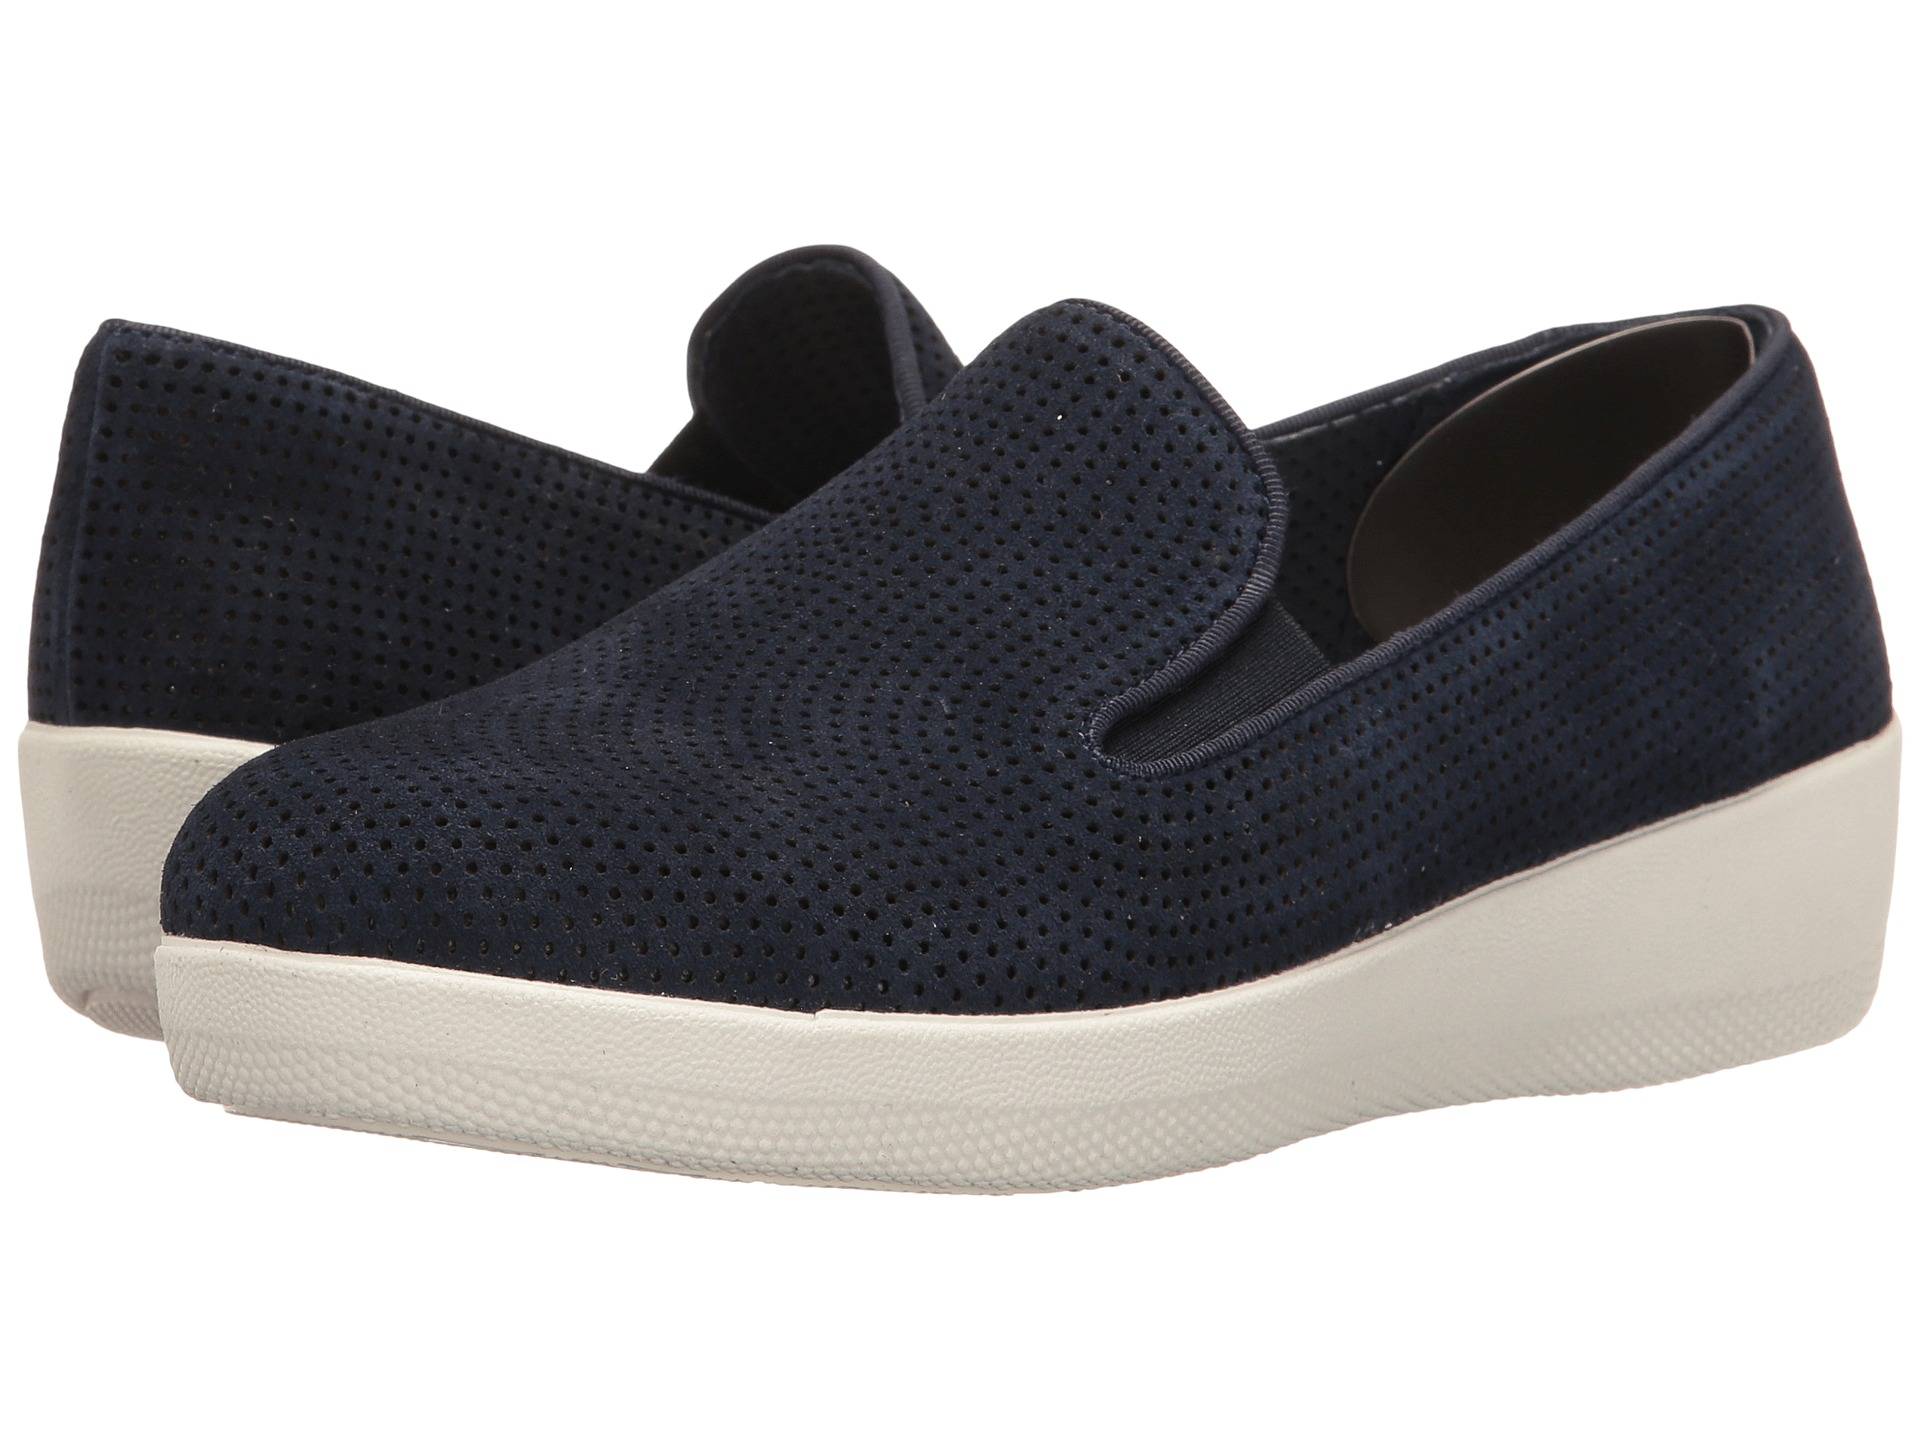 FitFlop. K likes. Made For Living In. Our mission is to support you from the ground up with shoes made for living in.